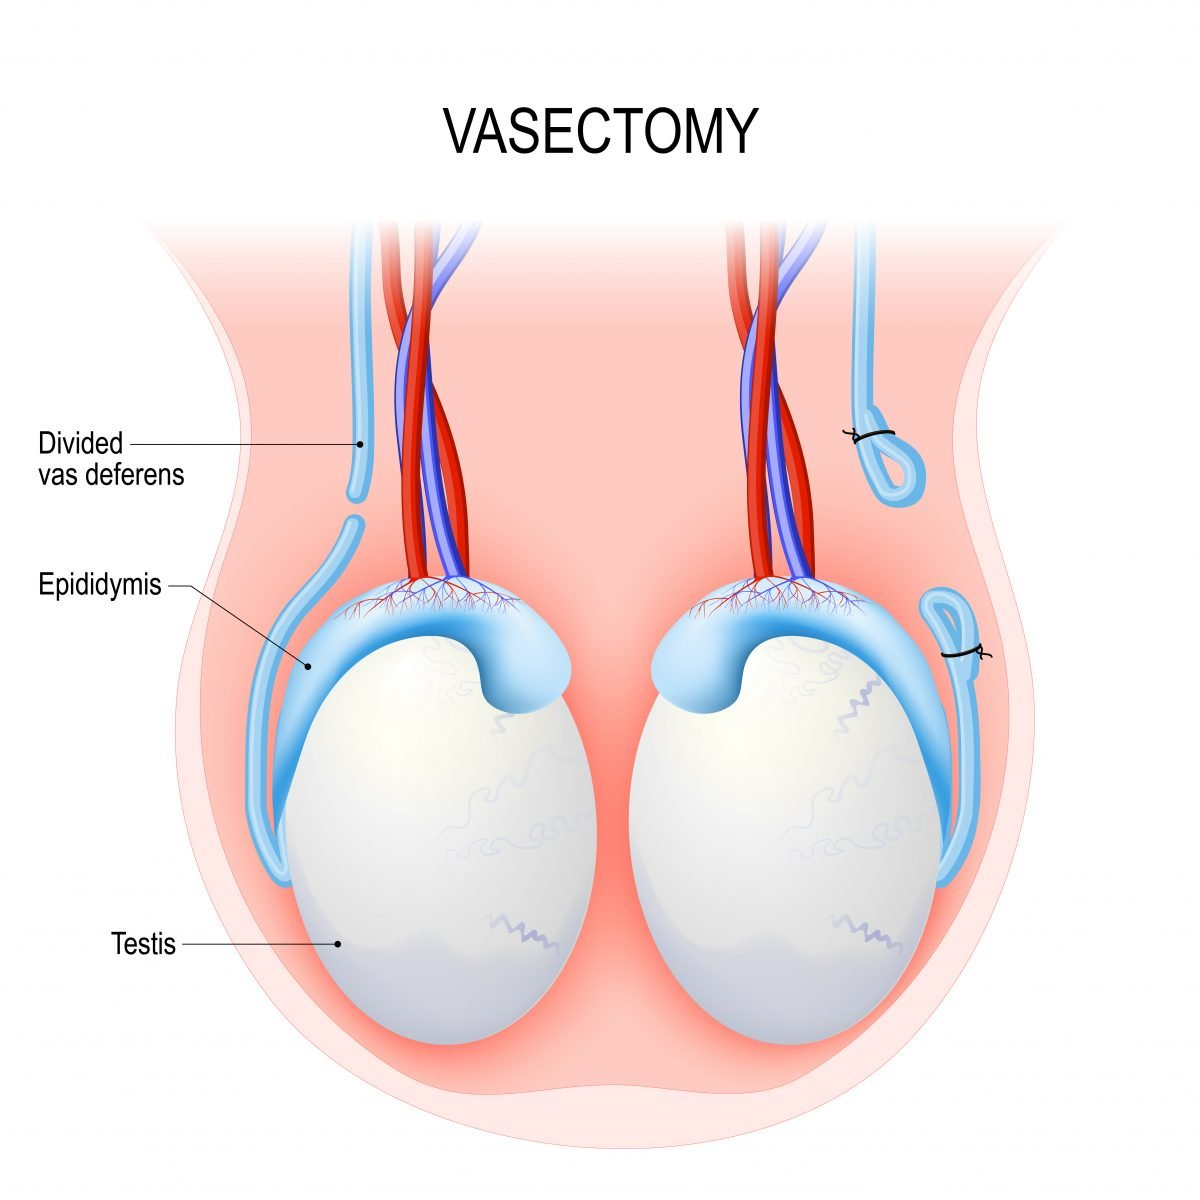 Prostate Cancer Risk Does Not Increase with Vasectomy ...